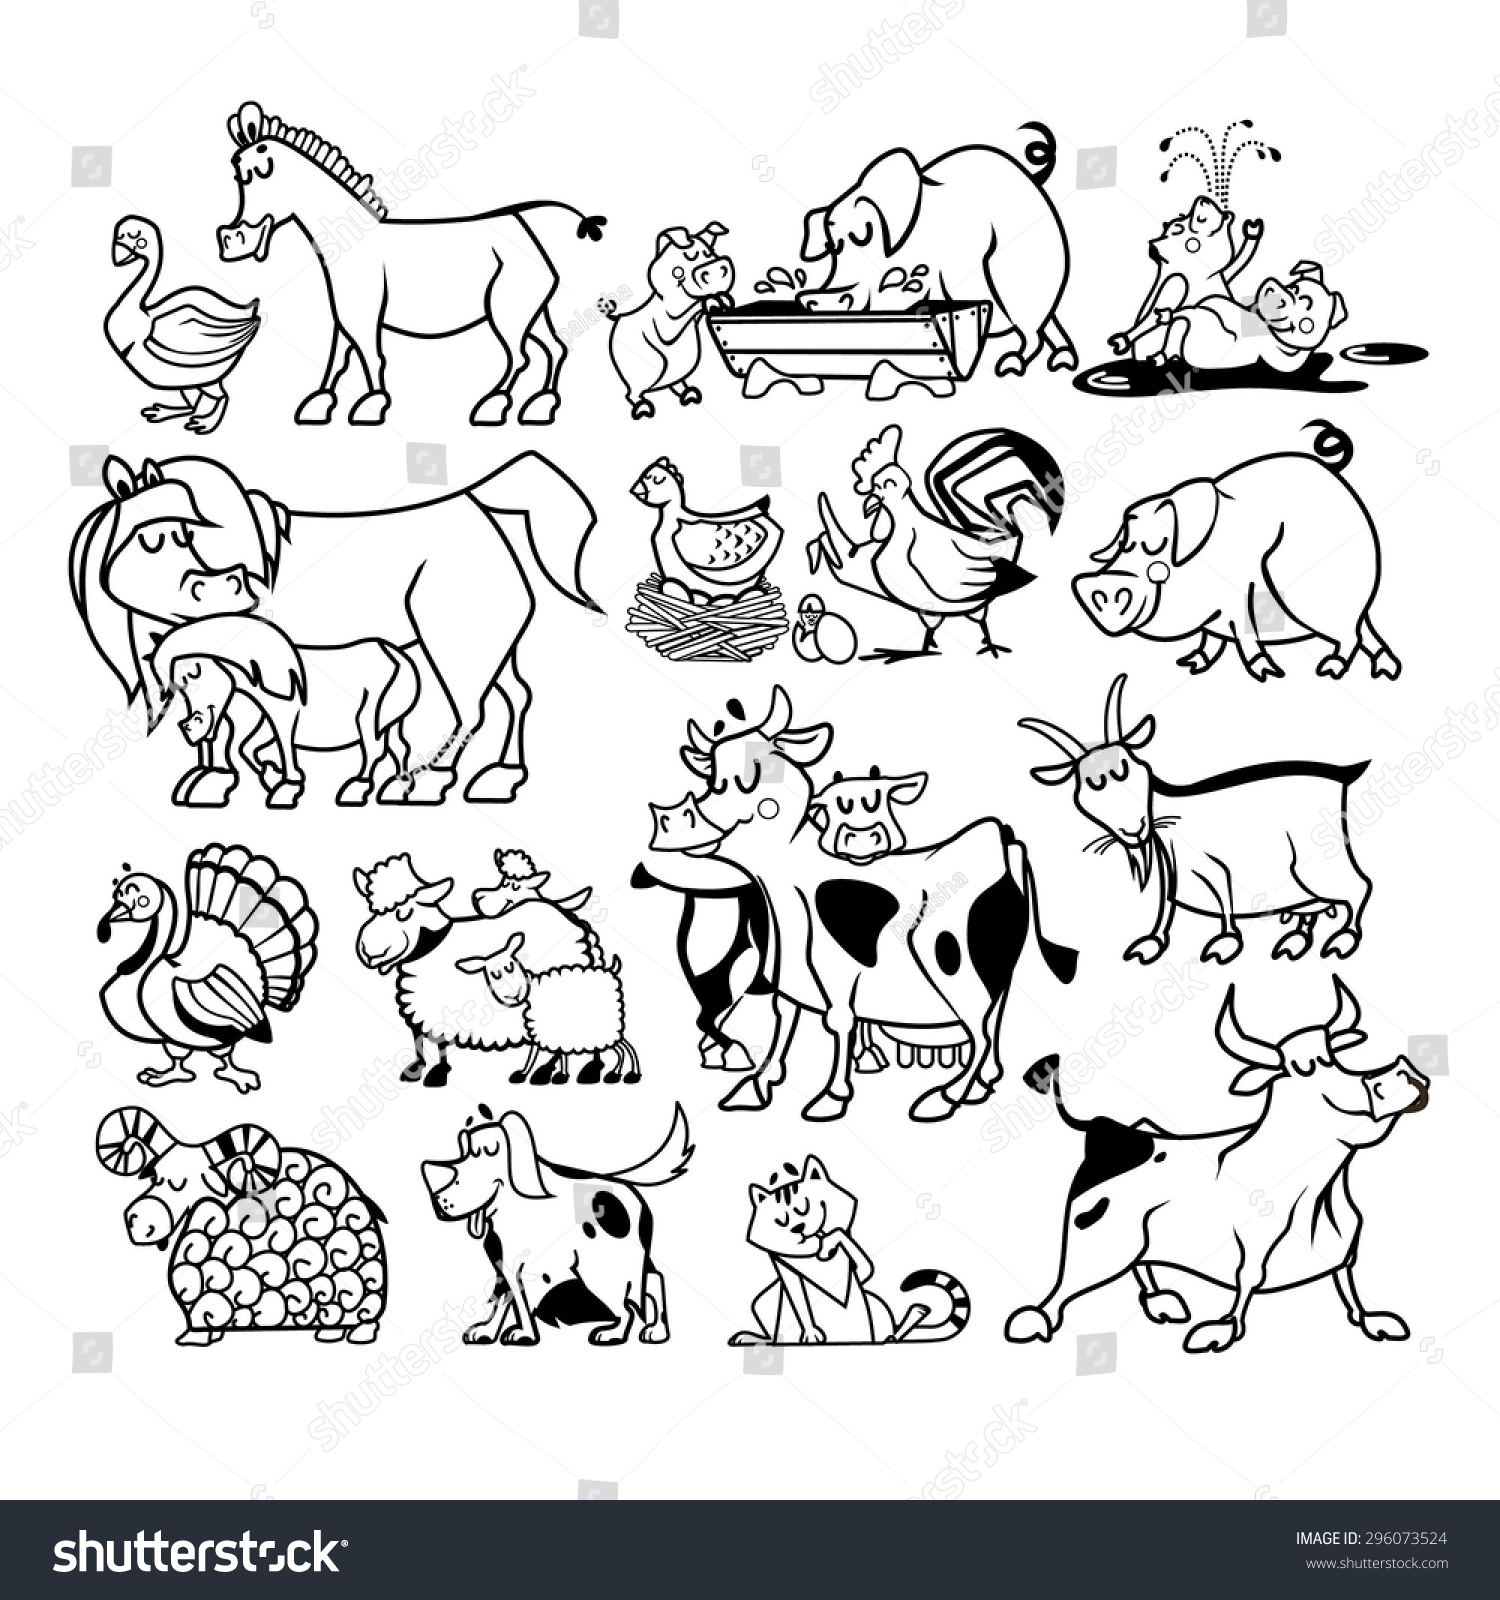 Pictures of Farm Animals Cartoon Black And White - #rock-cafe